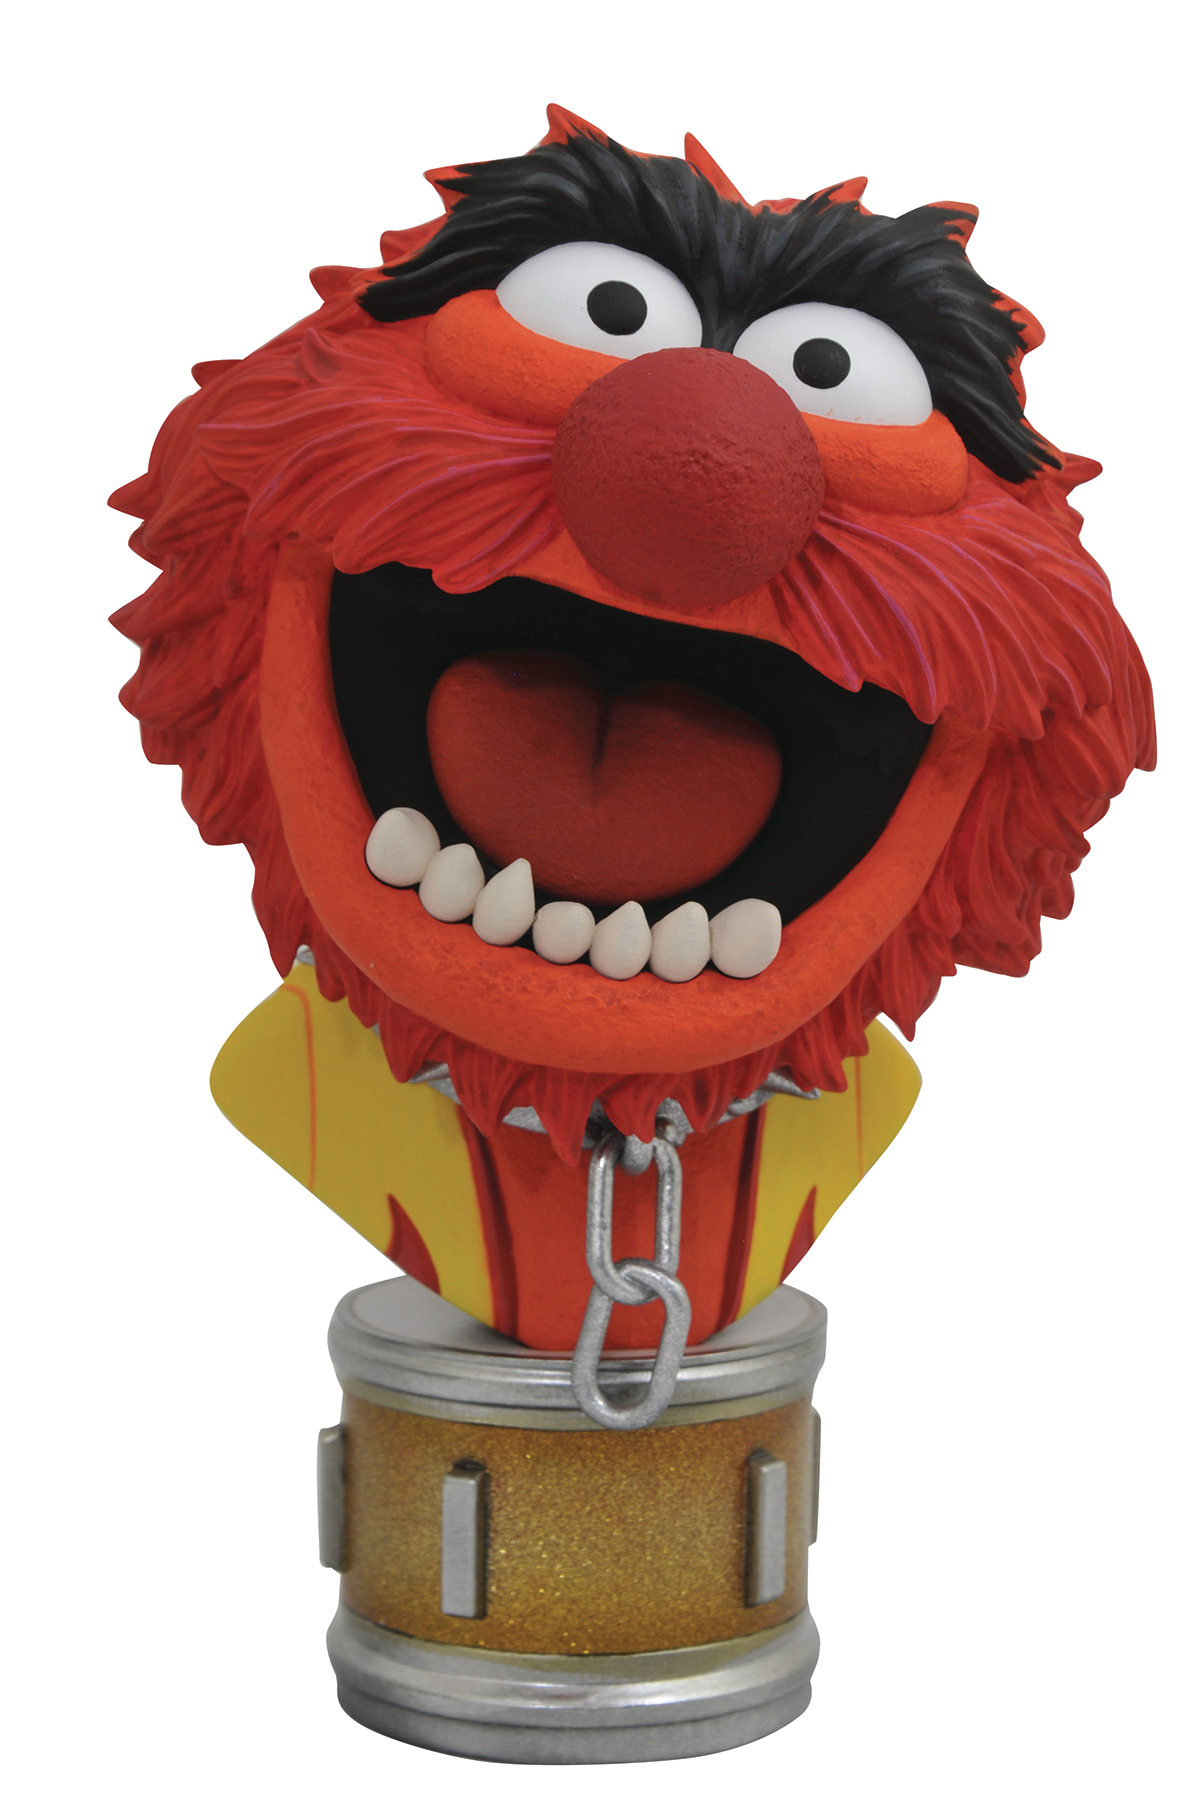 LEGENDS IN 3D MOVIE MUPPETS ANIMAL 1/2 SCALE BUST (O/A)